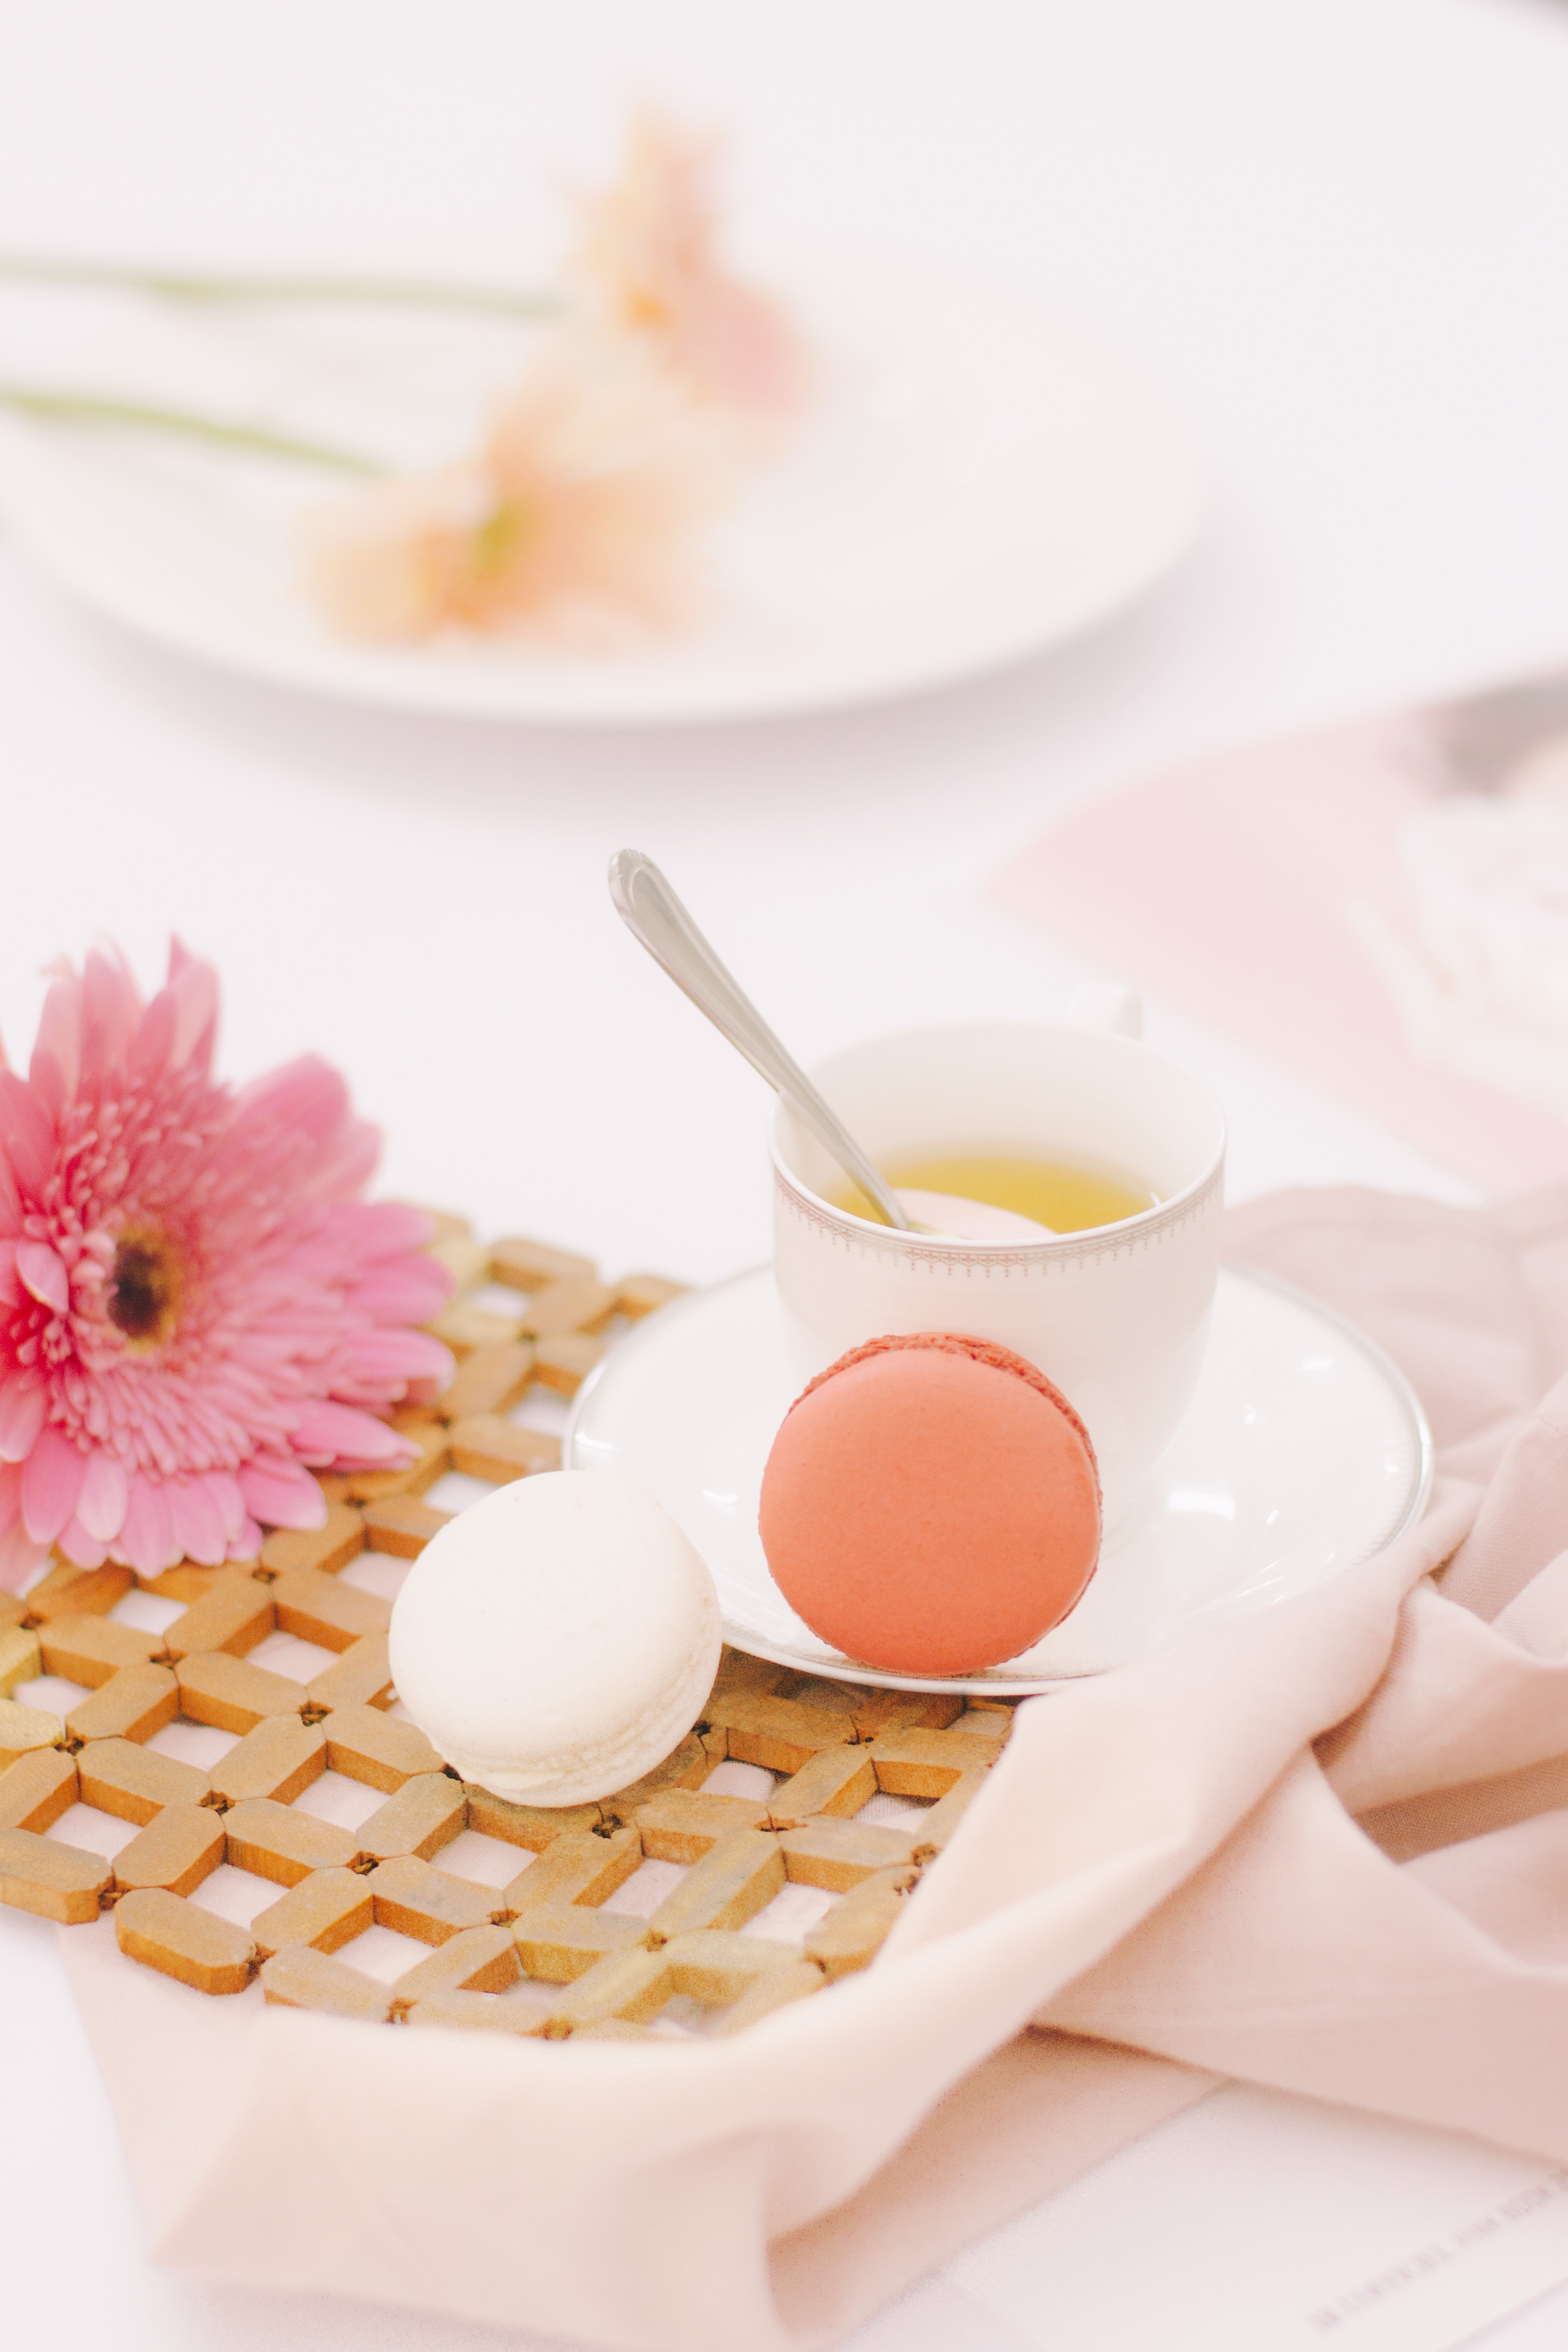 A pink gerbera flower next to a cup of tea and two macaroons